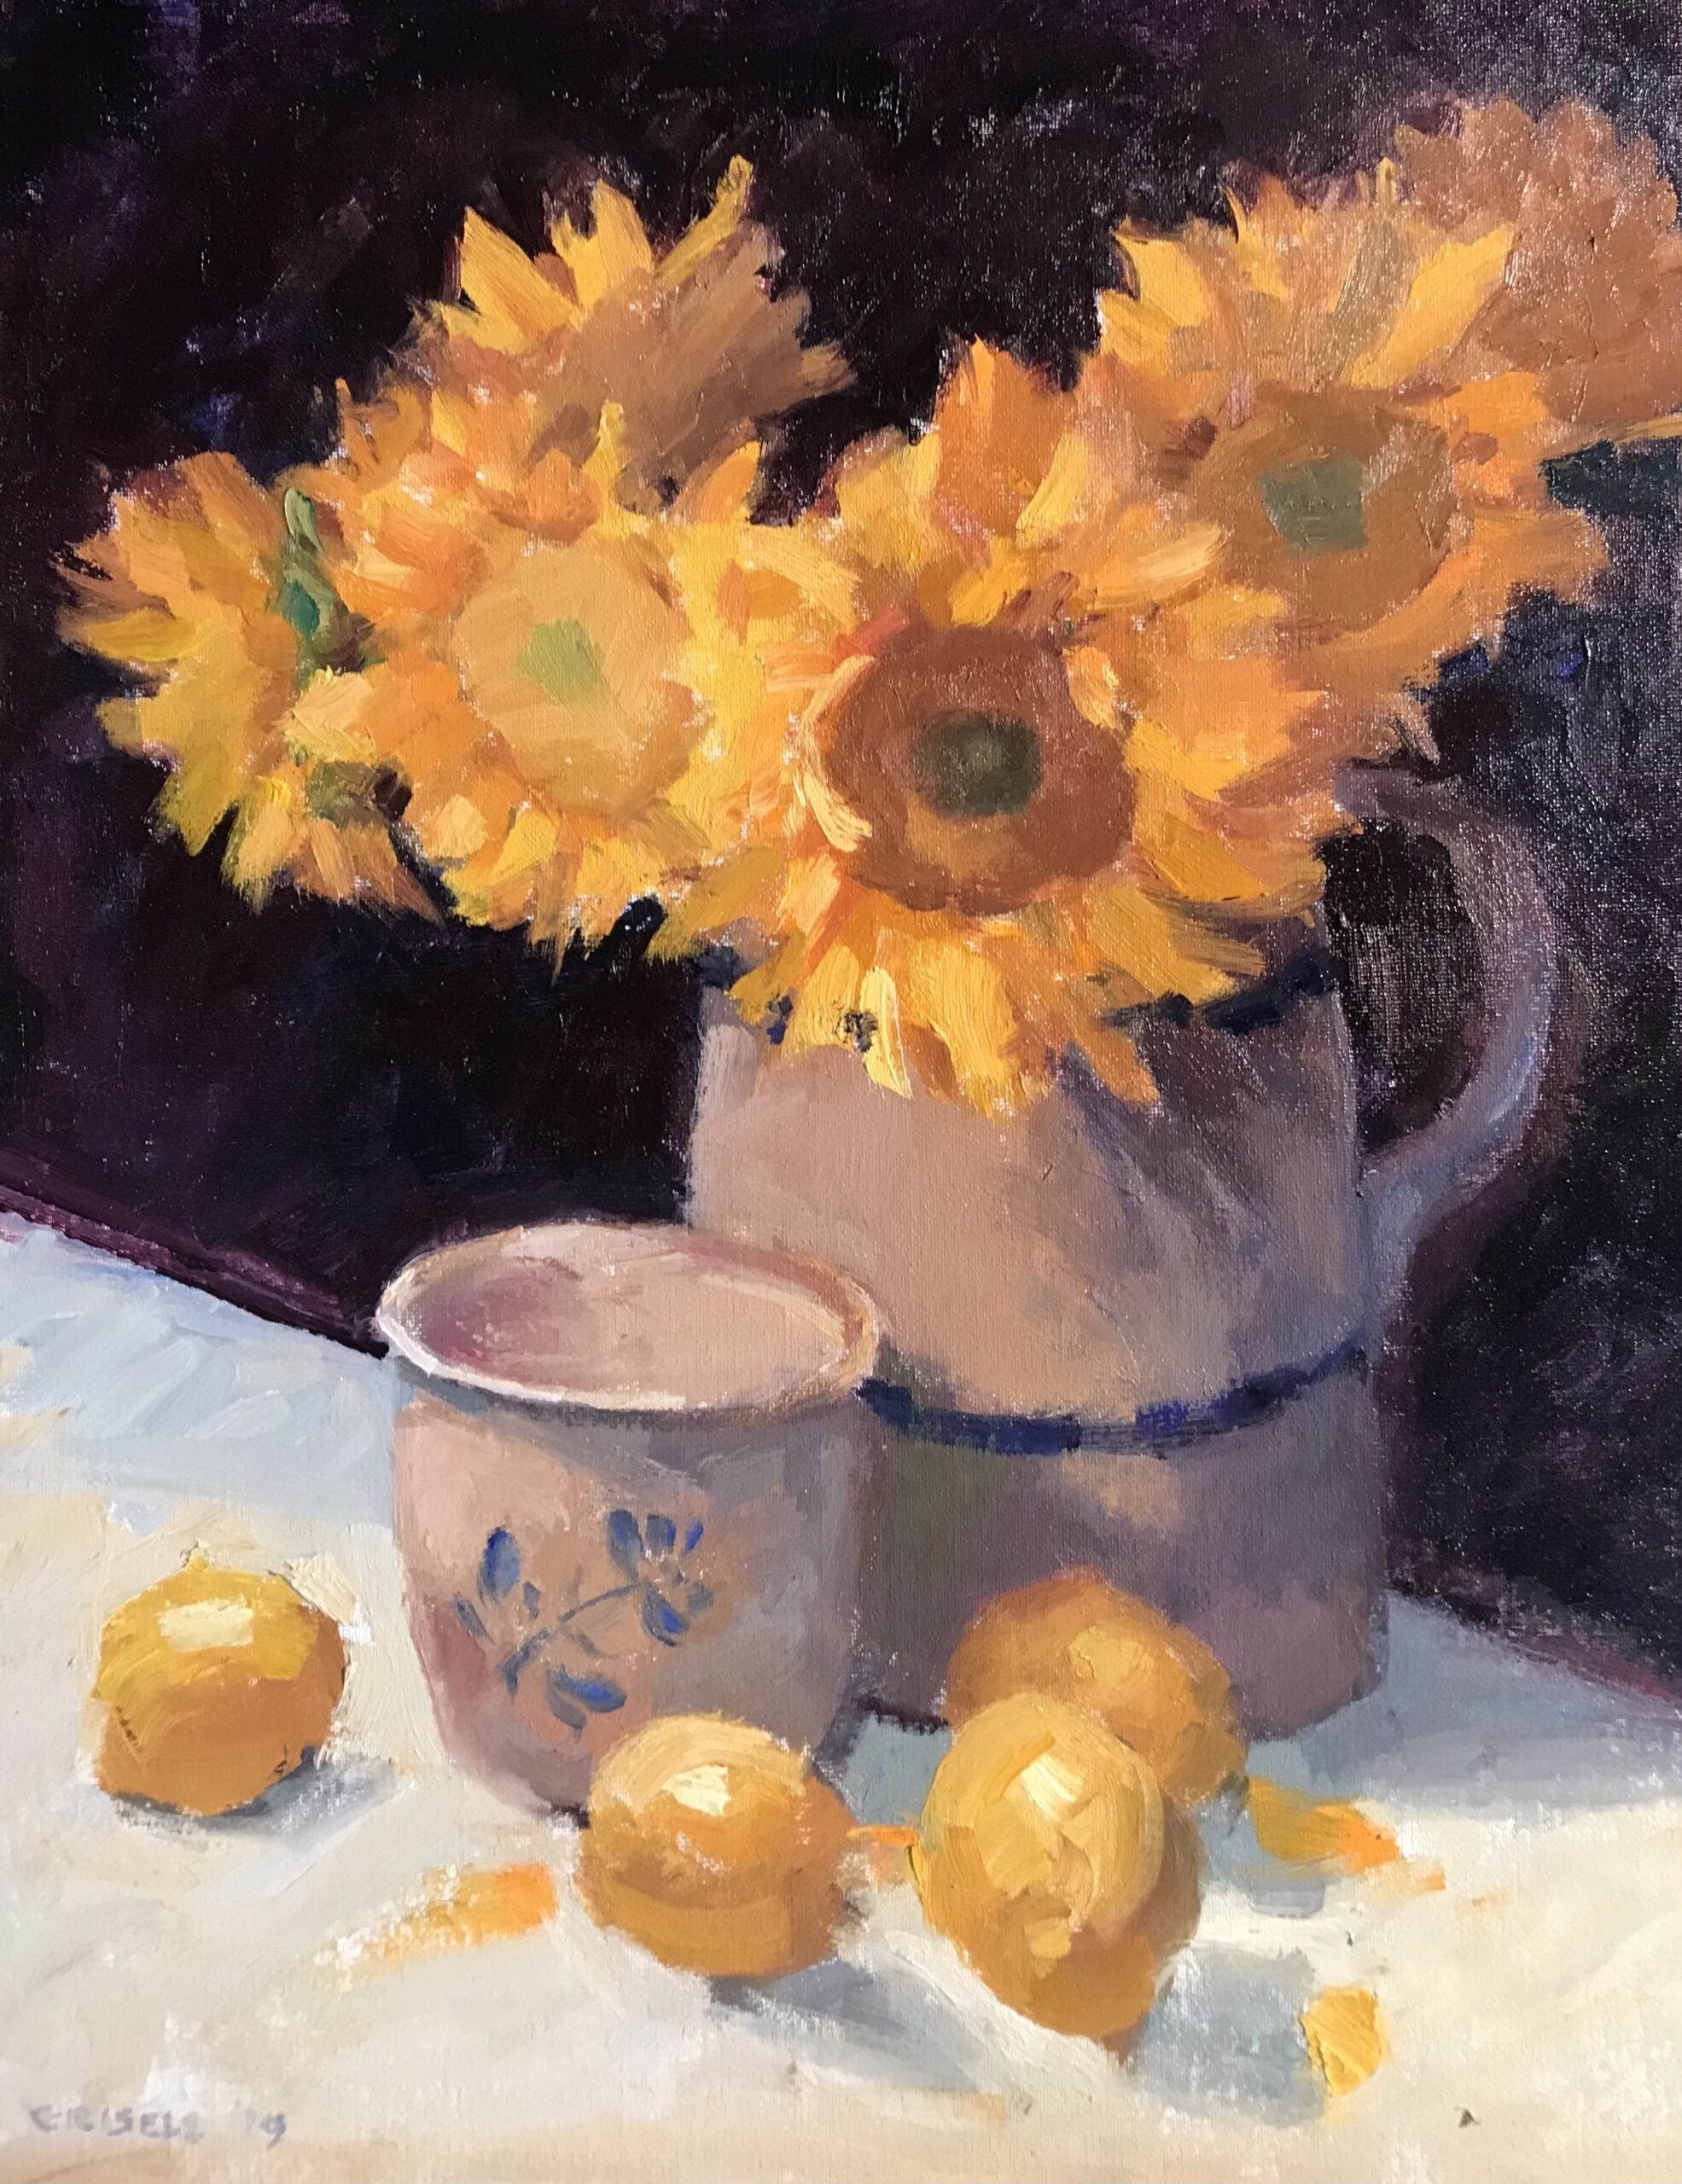 """""""Sunflowers, Lemons, and Crockery"""" Oil on Canvas on Panel, 20 x 16 Inches, $550 by Susan Grisell"""